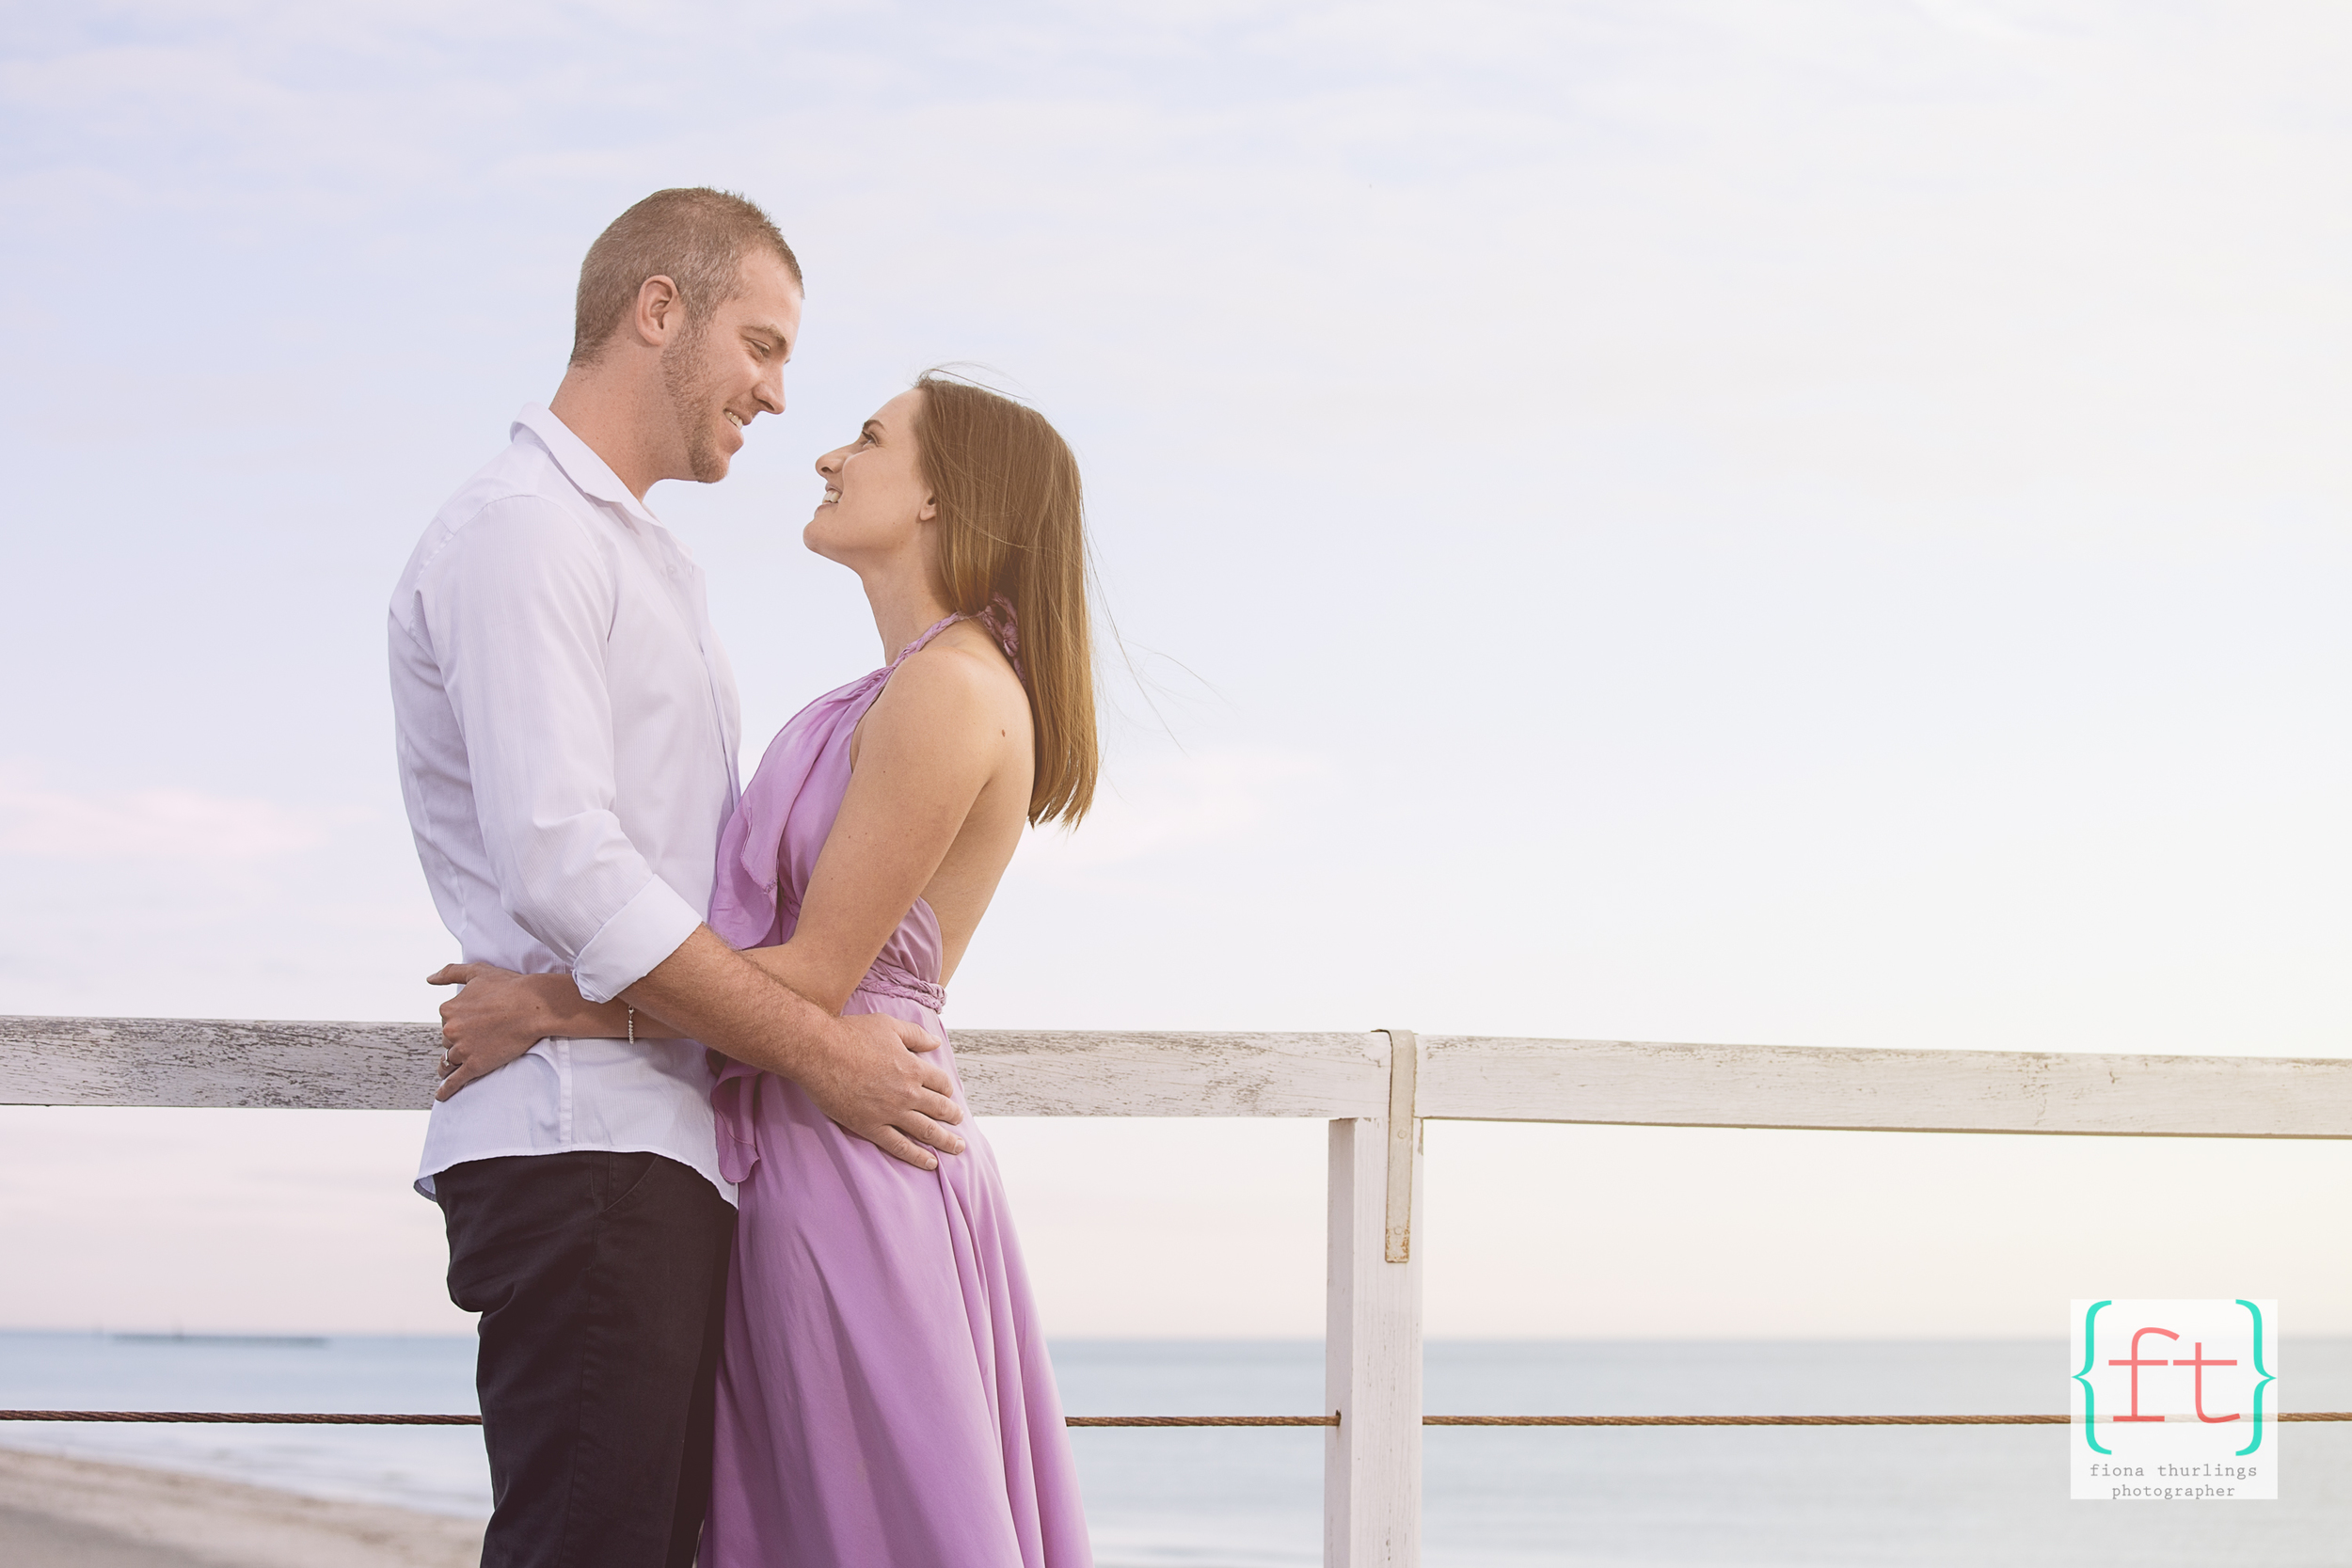 Gorgeous Sarah & Ryan, in what was a memorable engagement shoot